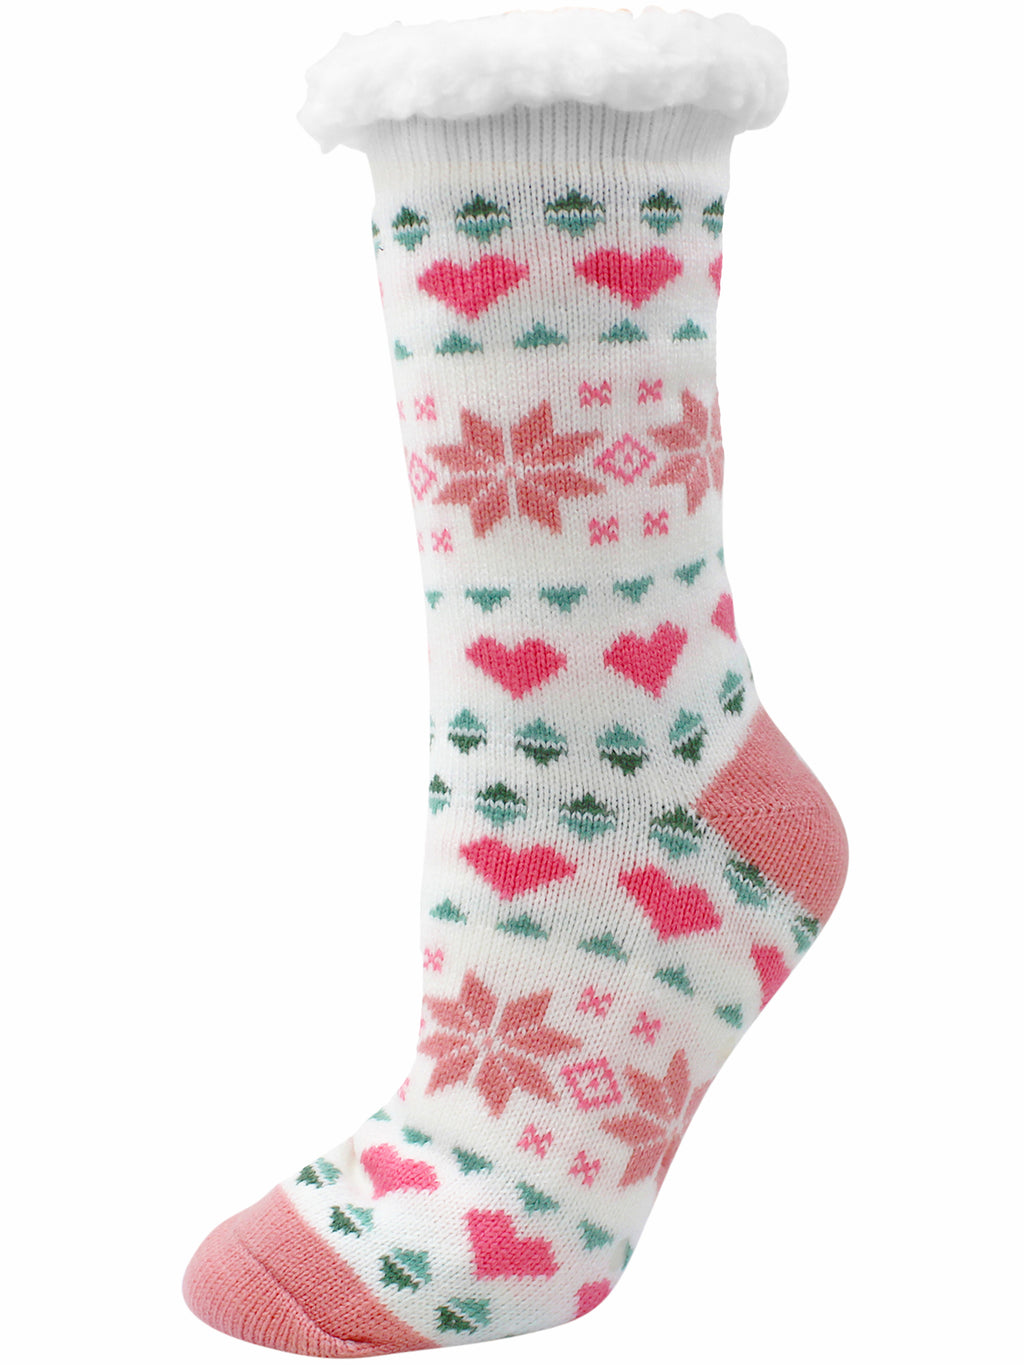 Black & Pink Snowflake 2-Pack Slipper Socks